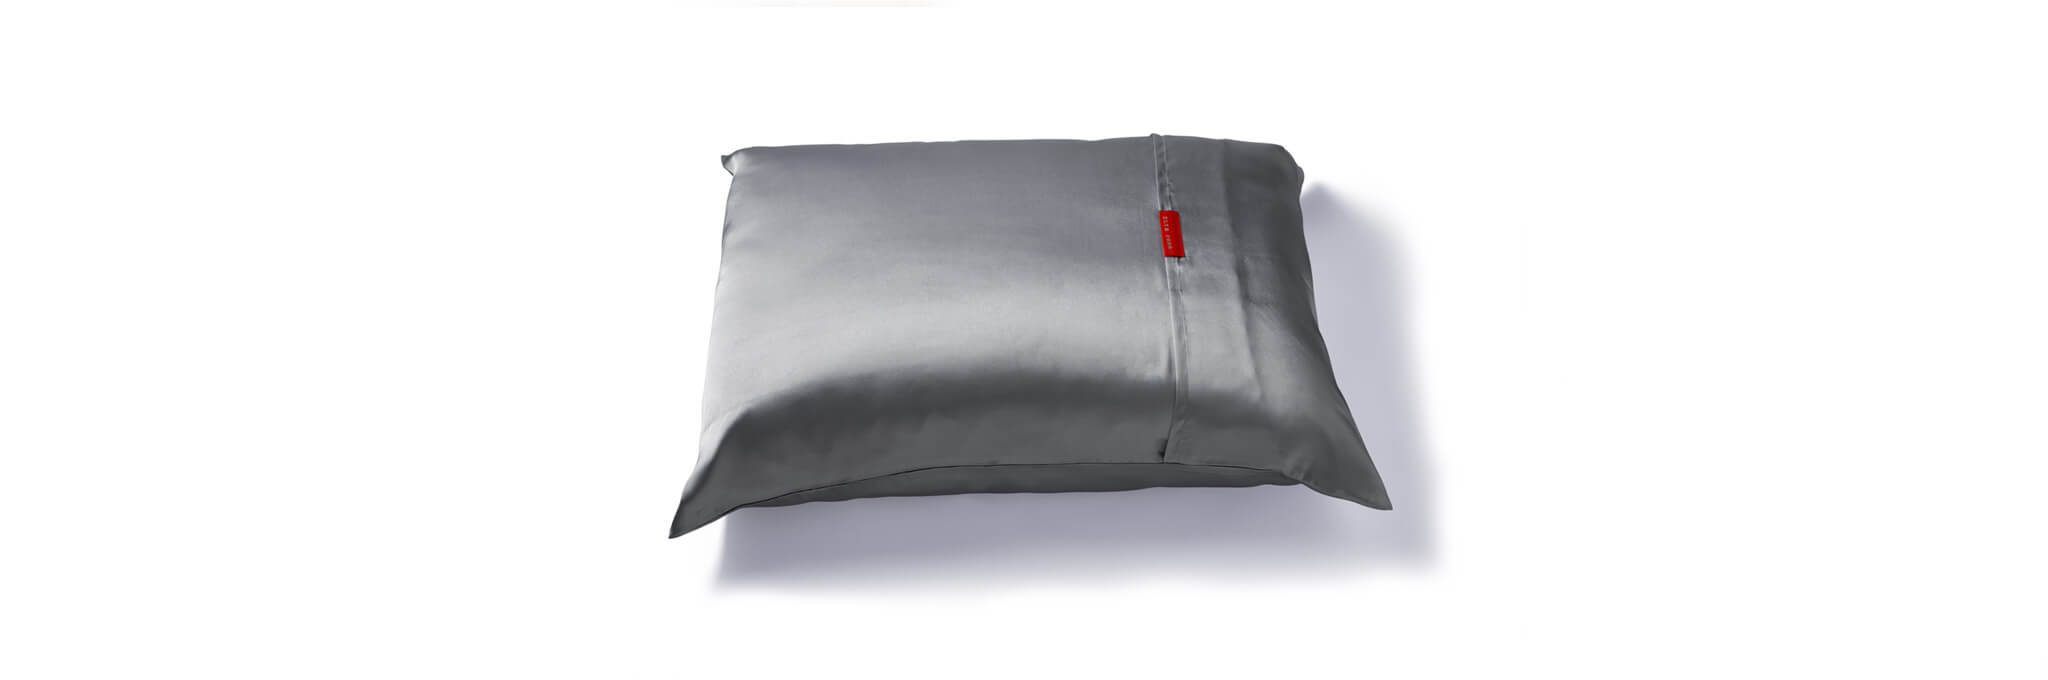 Silver pillow with red tag